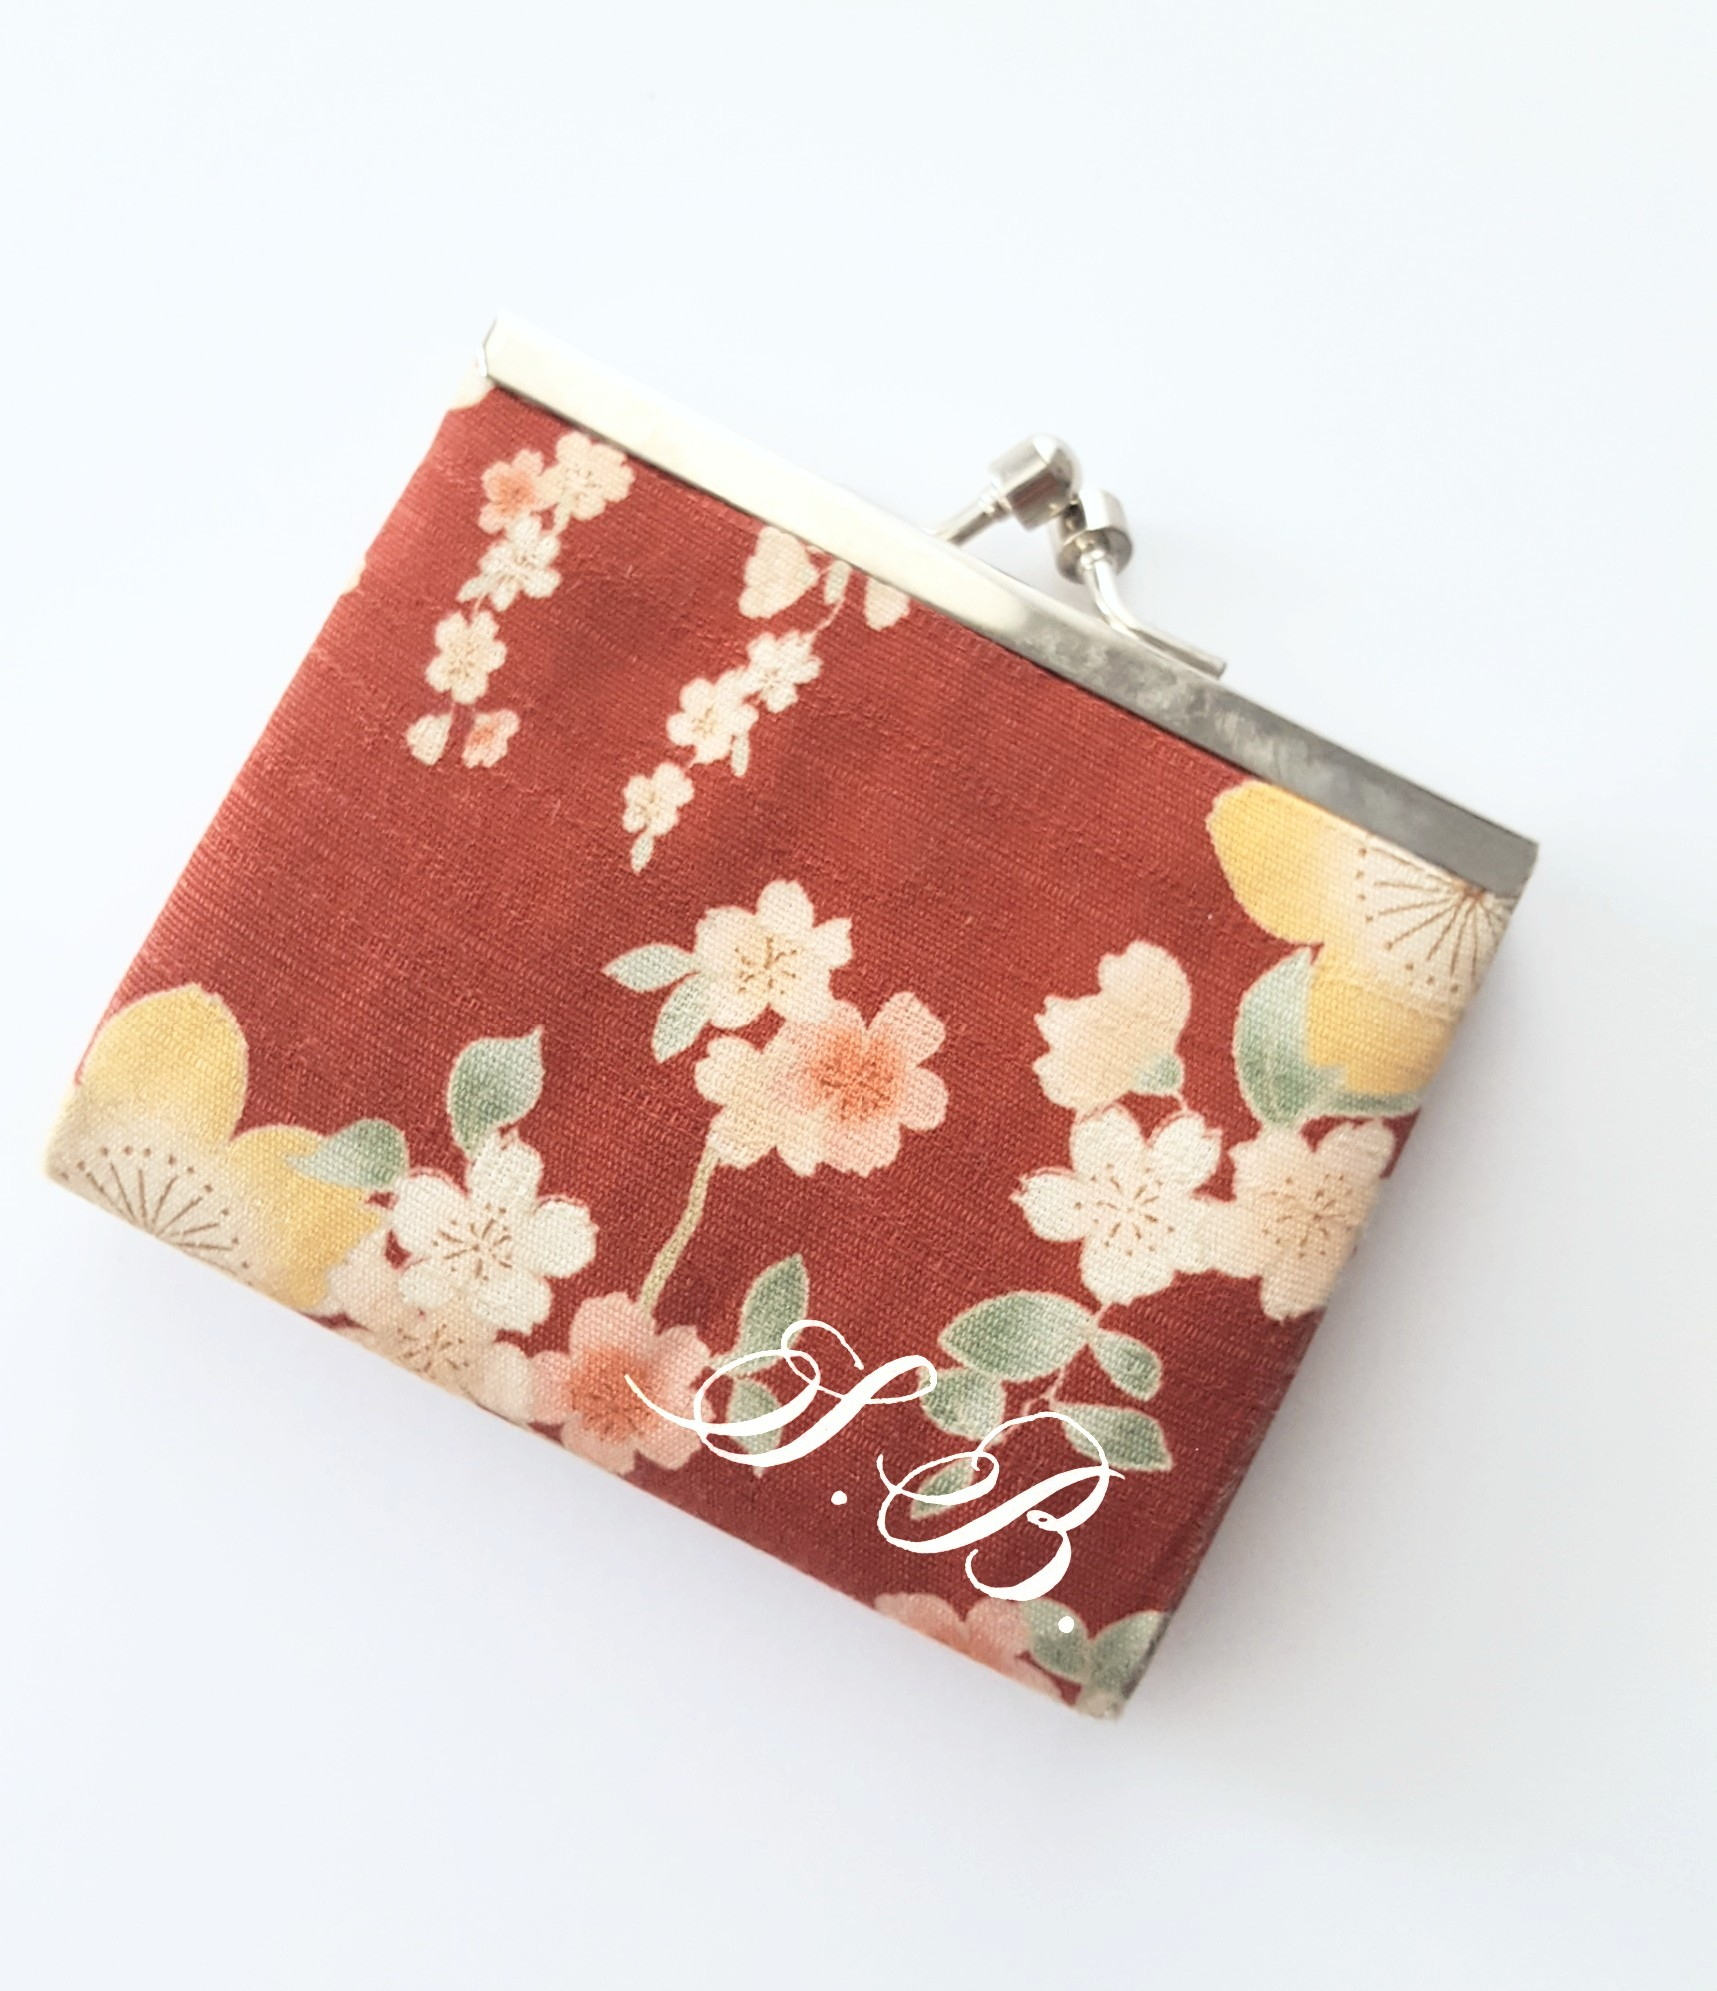 Personalized Wallet or coin purse